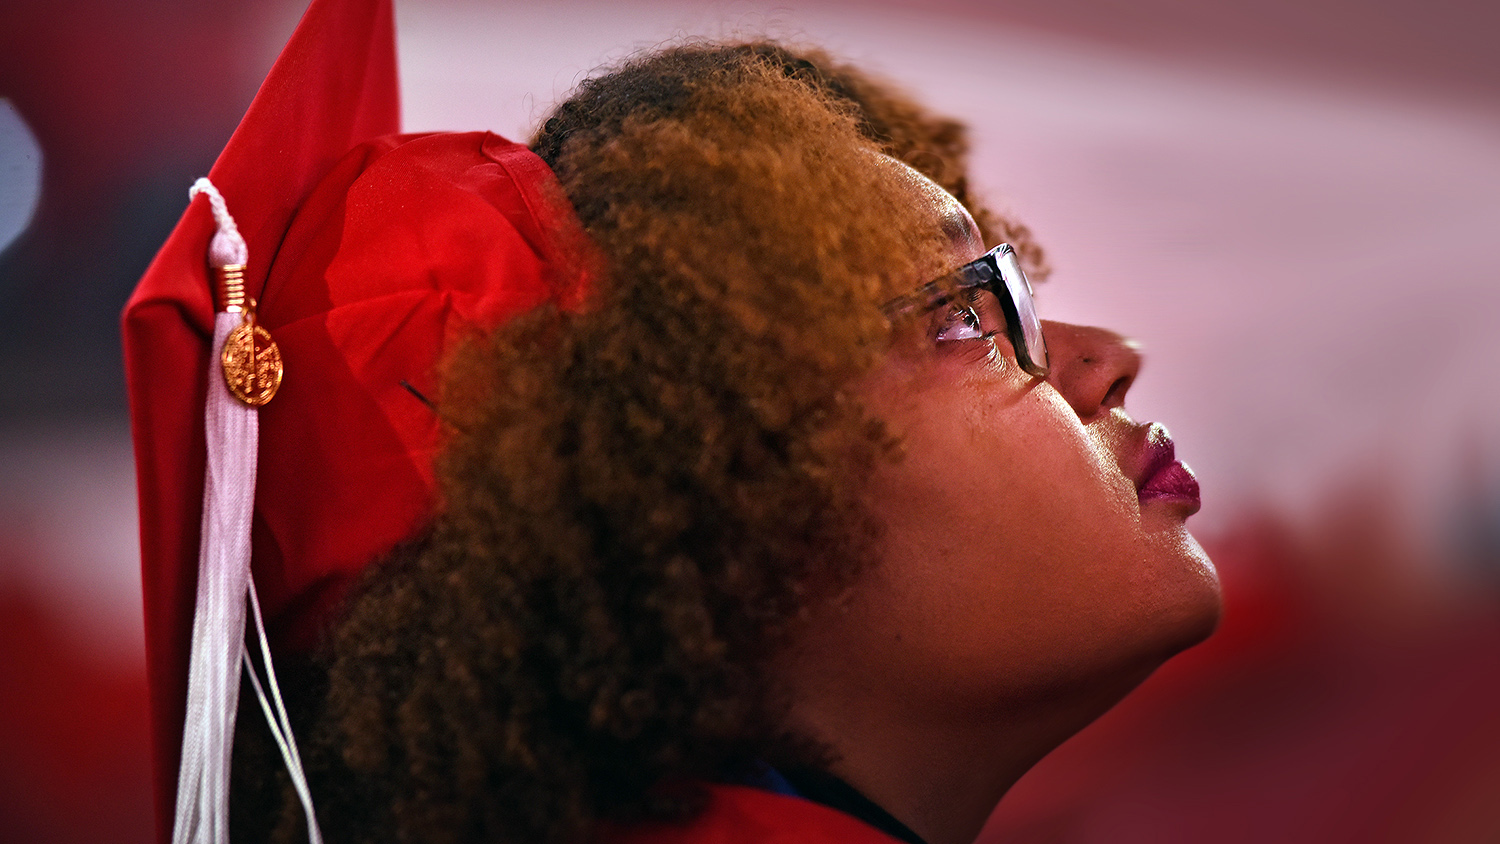 An NC State student stares upward during graduation.